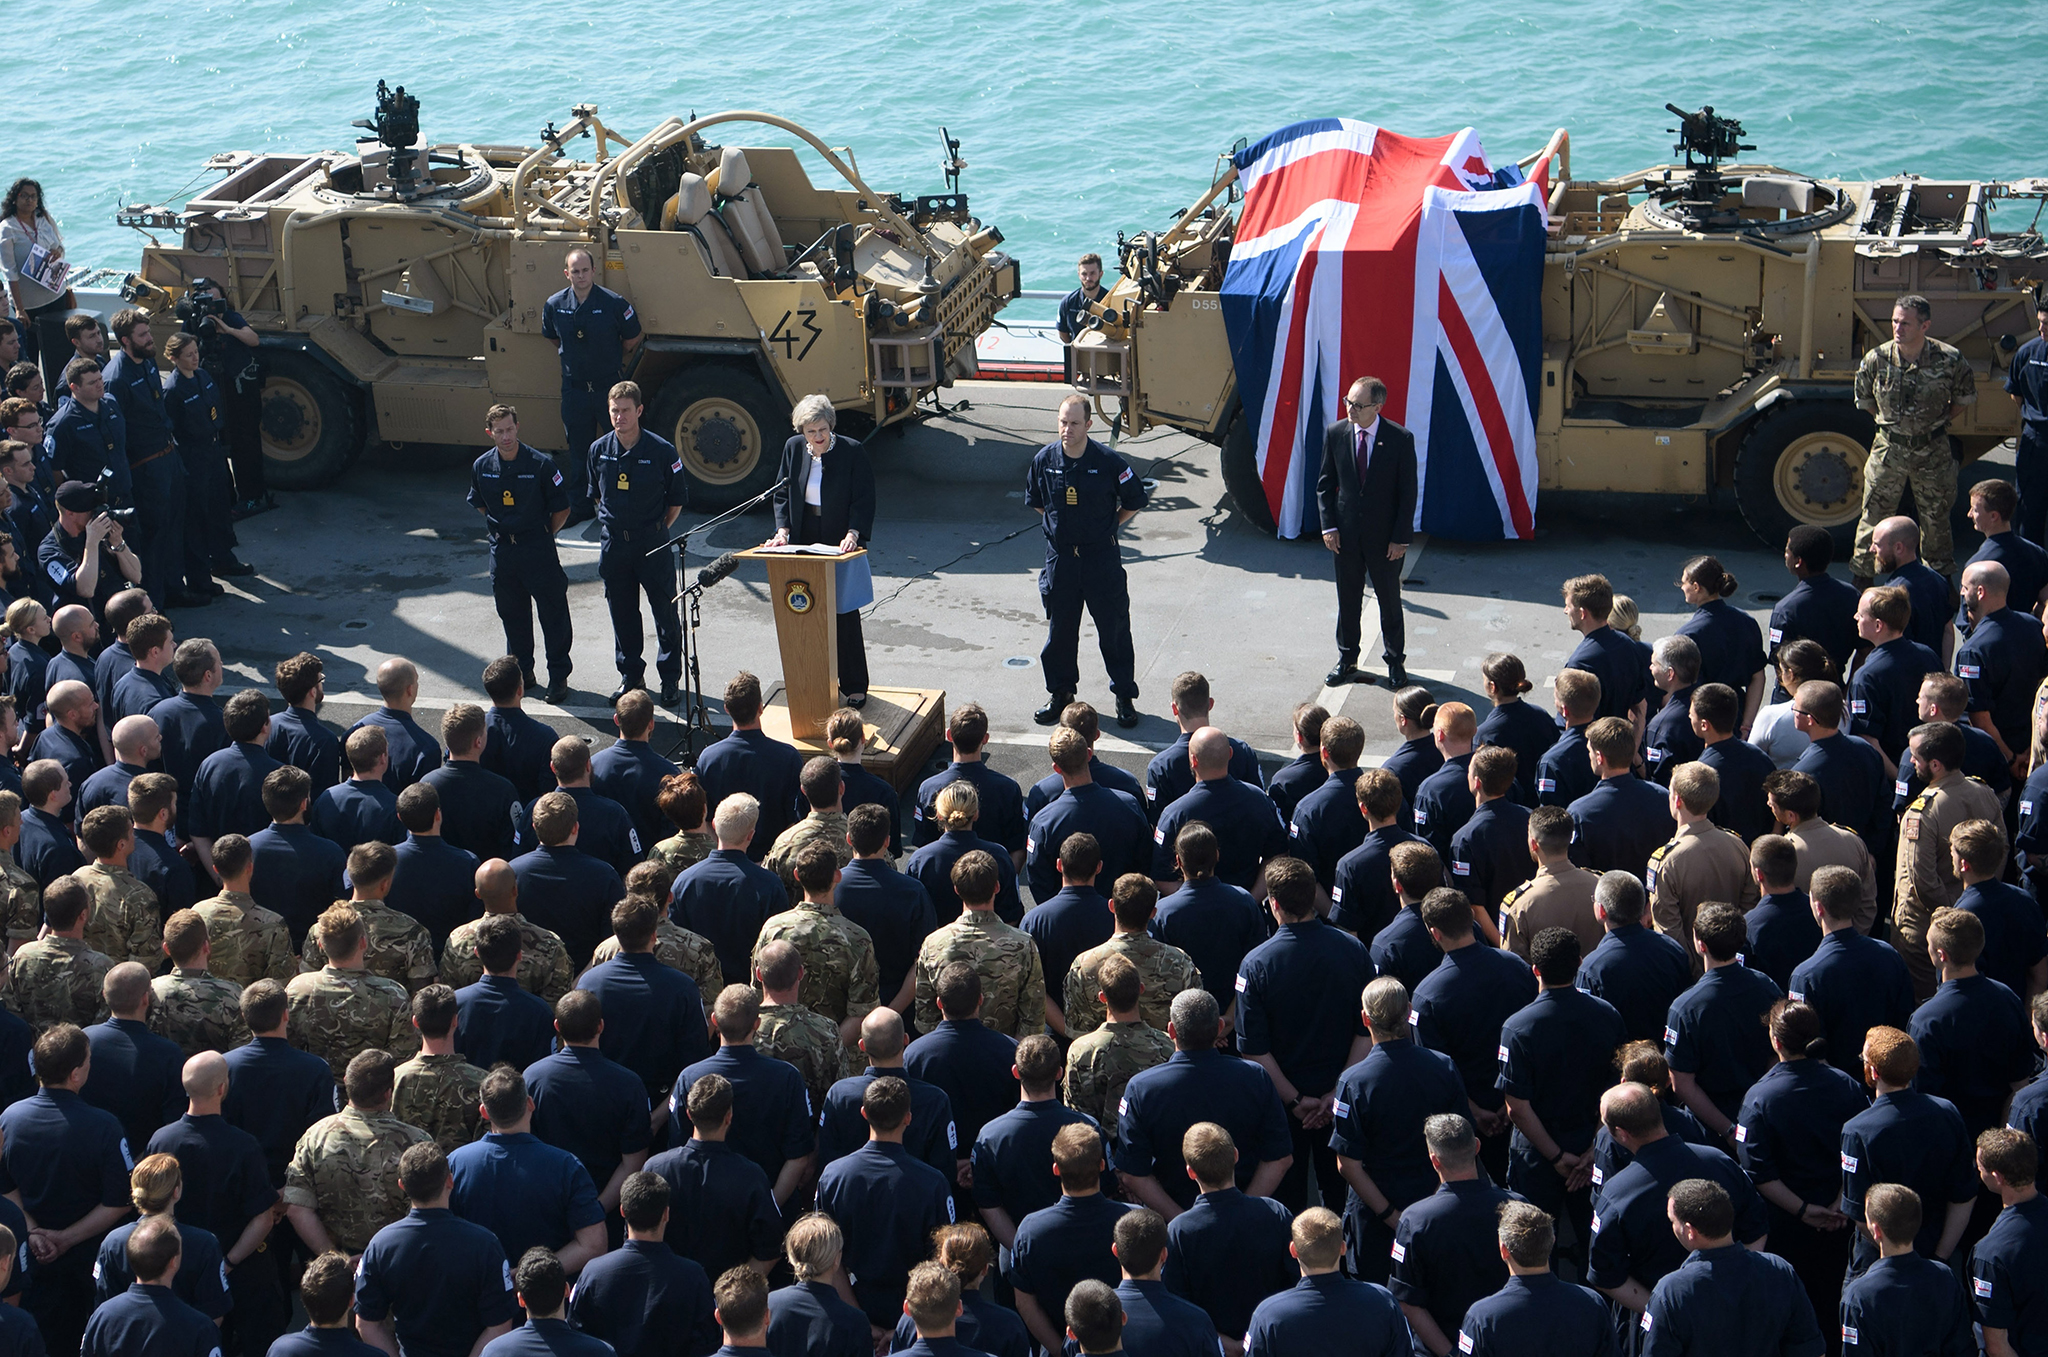 British Prime Minister Theresa May addresses sailors on board HMS Ocean during her trip to attend the Gulf Cooperation Council summit in Bahrain, on December 6, 2016 in Manama, Bahrain. Prime Minister May is the first British leader and the first woman to attend the annual two-day Gulf Cooperation Council and will attend a dinner with the leaders of Saudi Arabia, Kuwait, the United Arab Emirates, Qatar, Bahrain and Oman on Tuesday, and will also discuss the situation in Yemen and Syria.  (Photo by Carl Court/Getty Images)